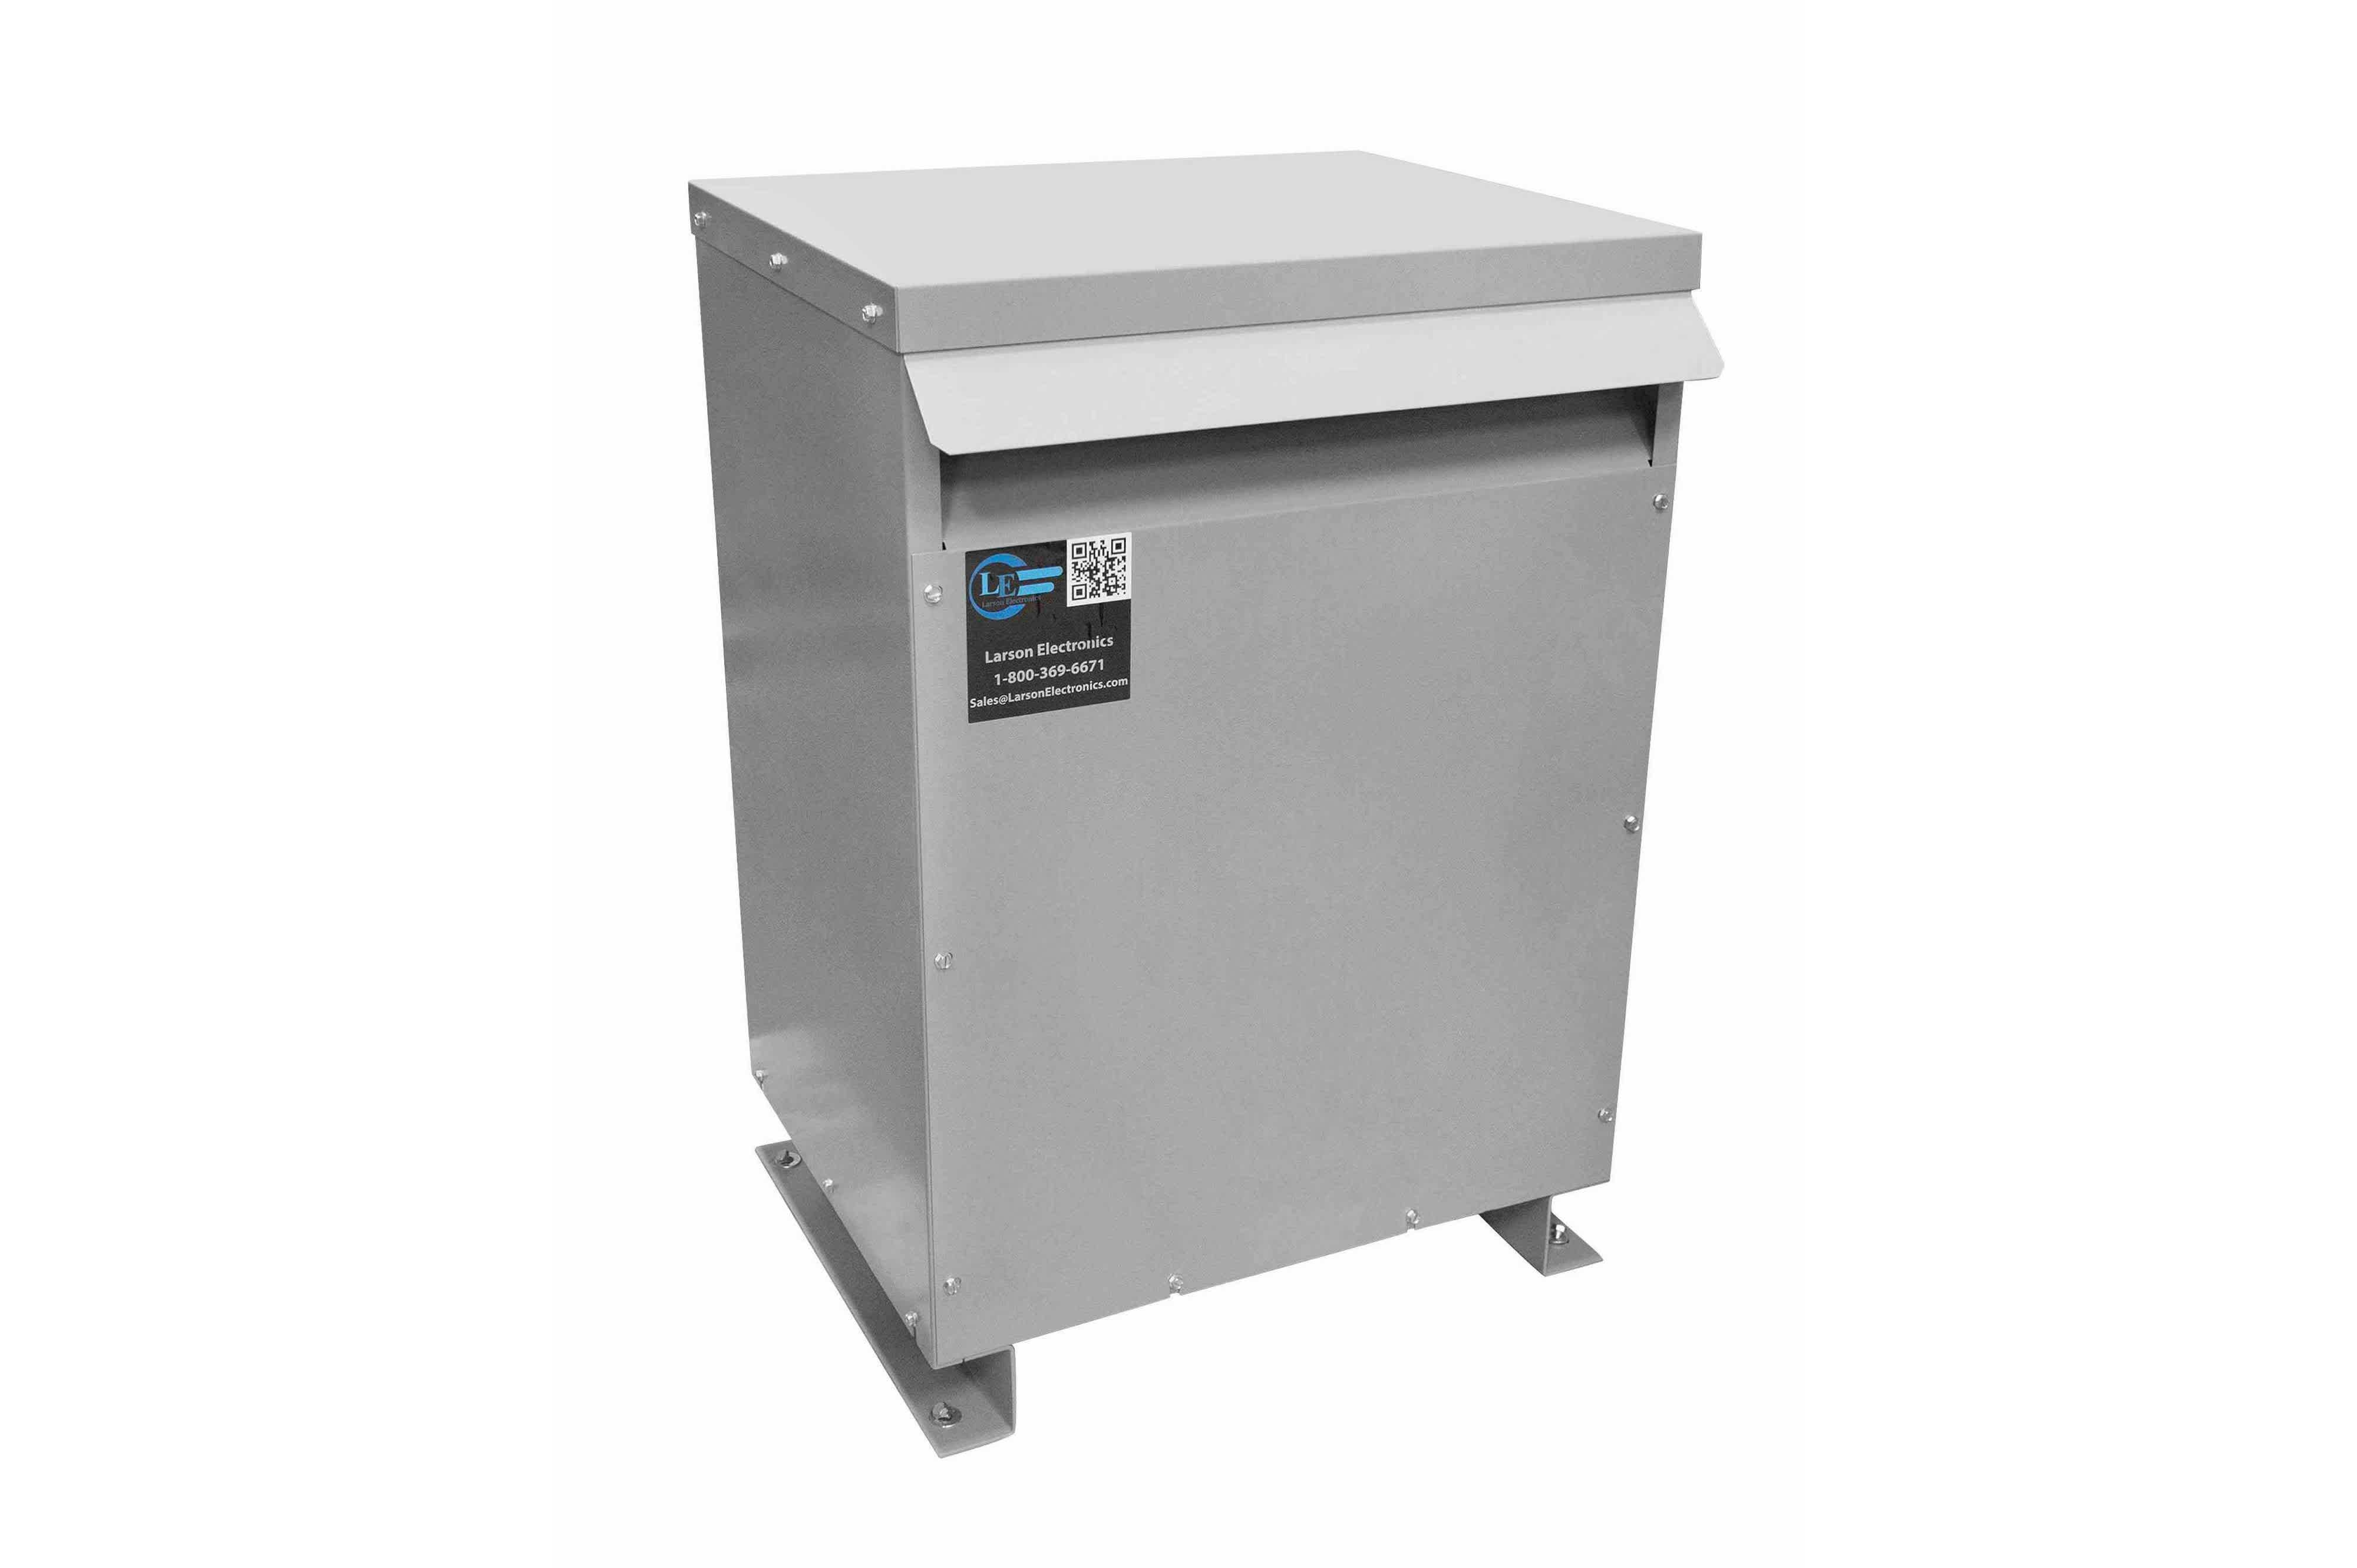 225 kVA 3PH Isolation Transformer, 415V Wye Primary, 240V Delta Secondary, N3R, Ventilated, 60 Hz